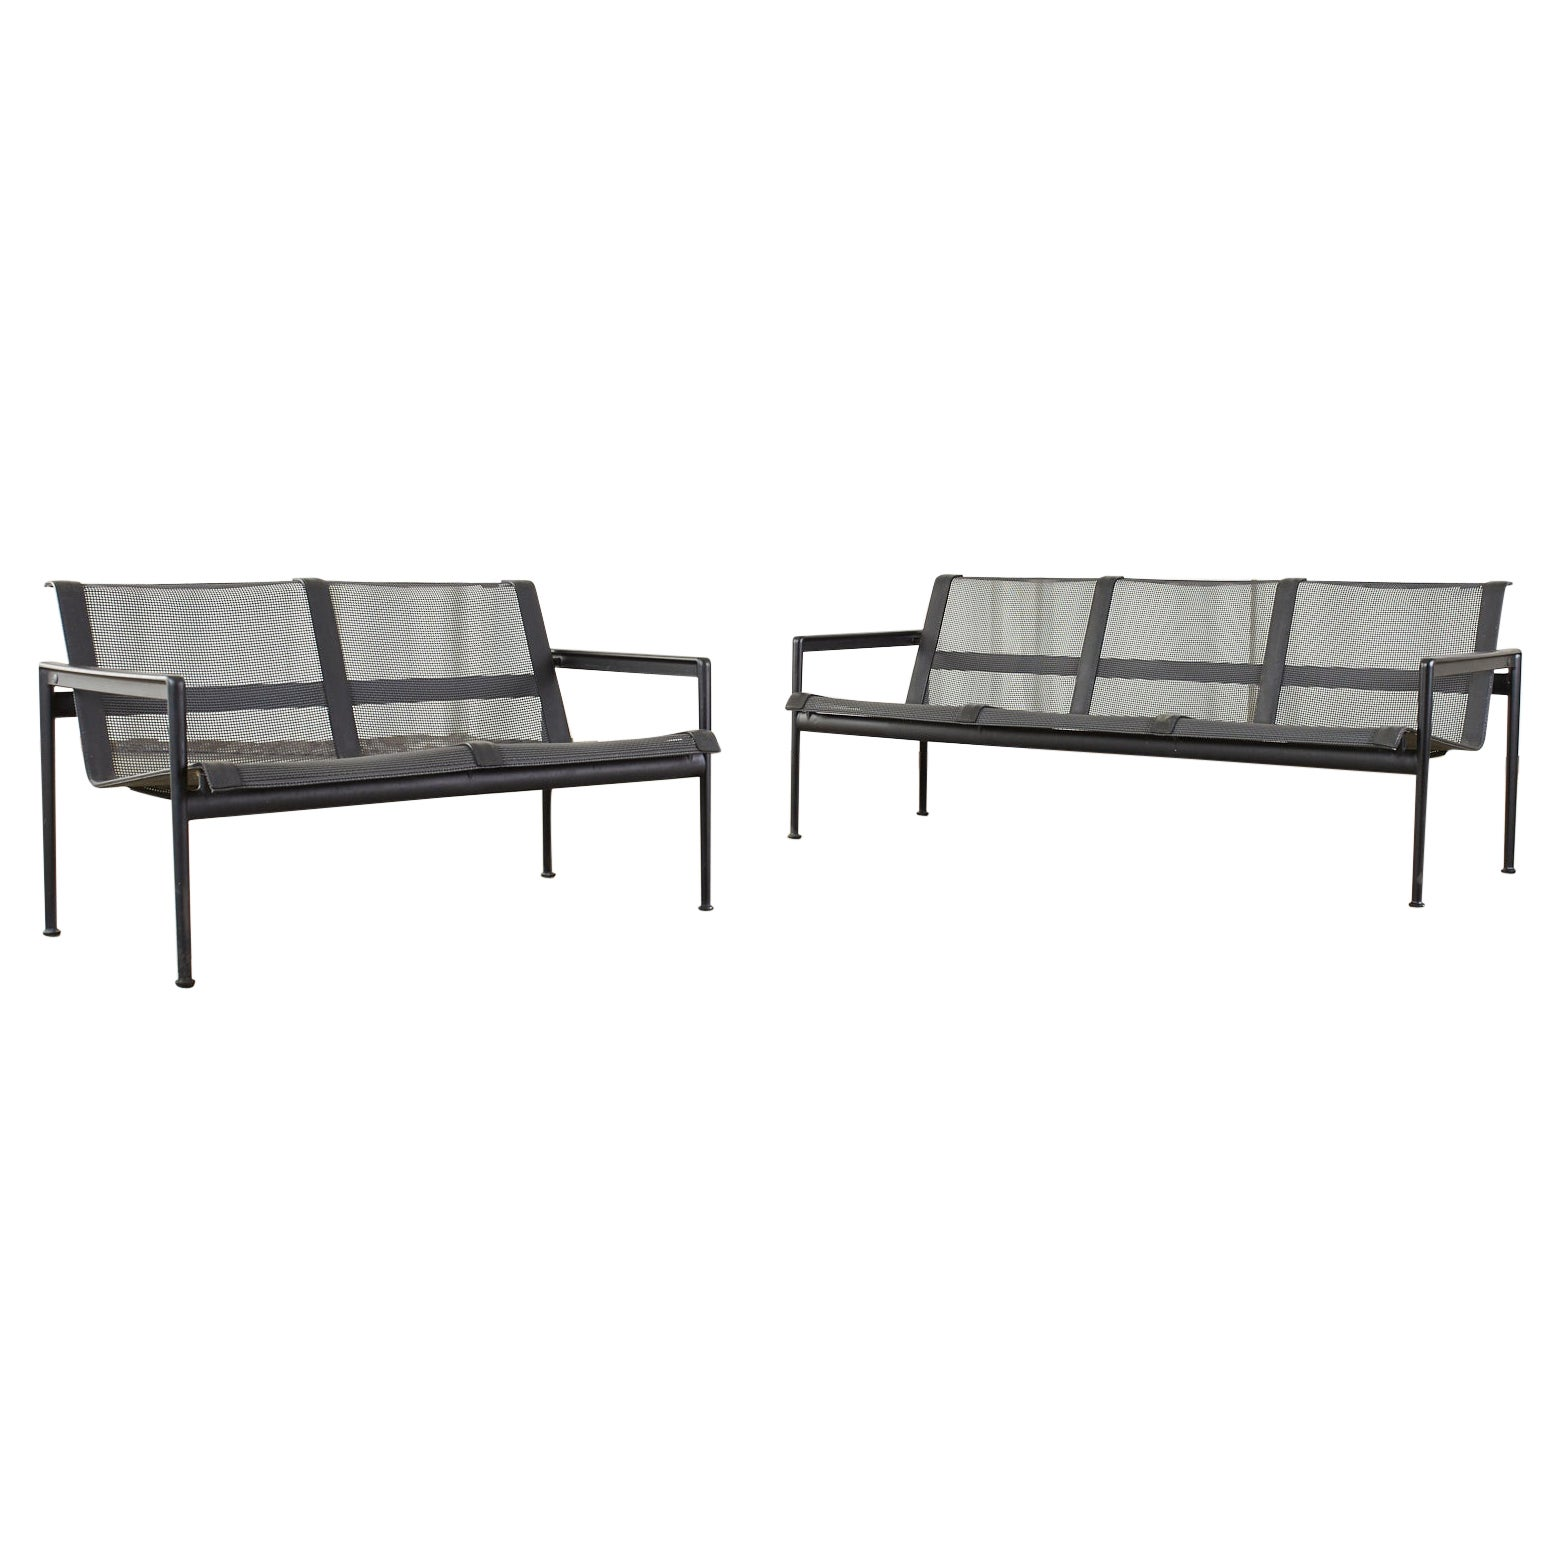 Pair of Richard Schultz for Knoll Garden Lounge Settee and Sofa